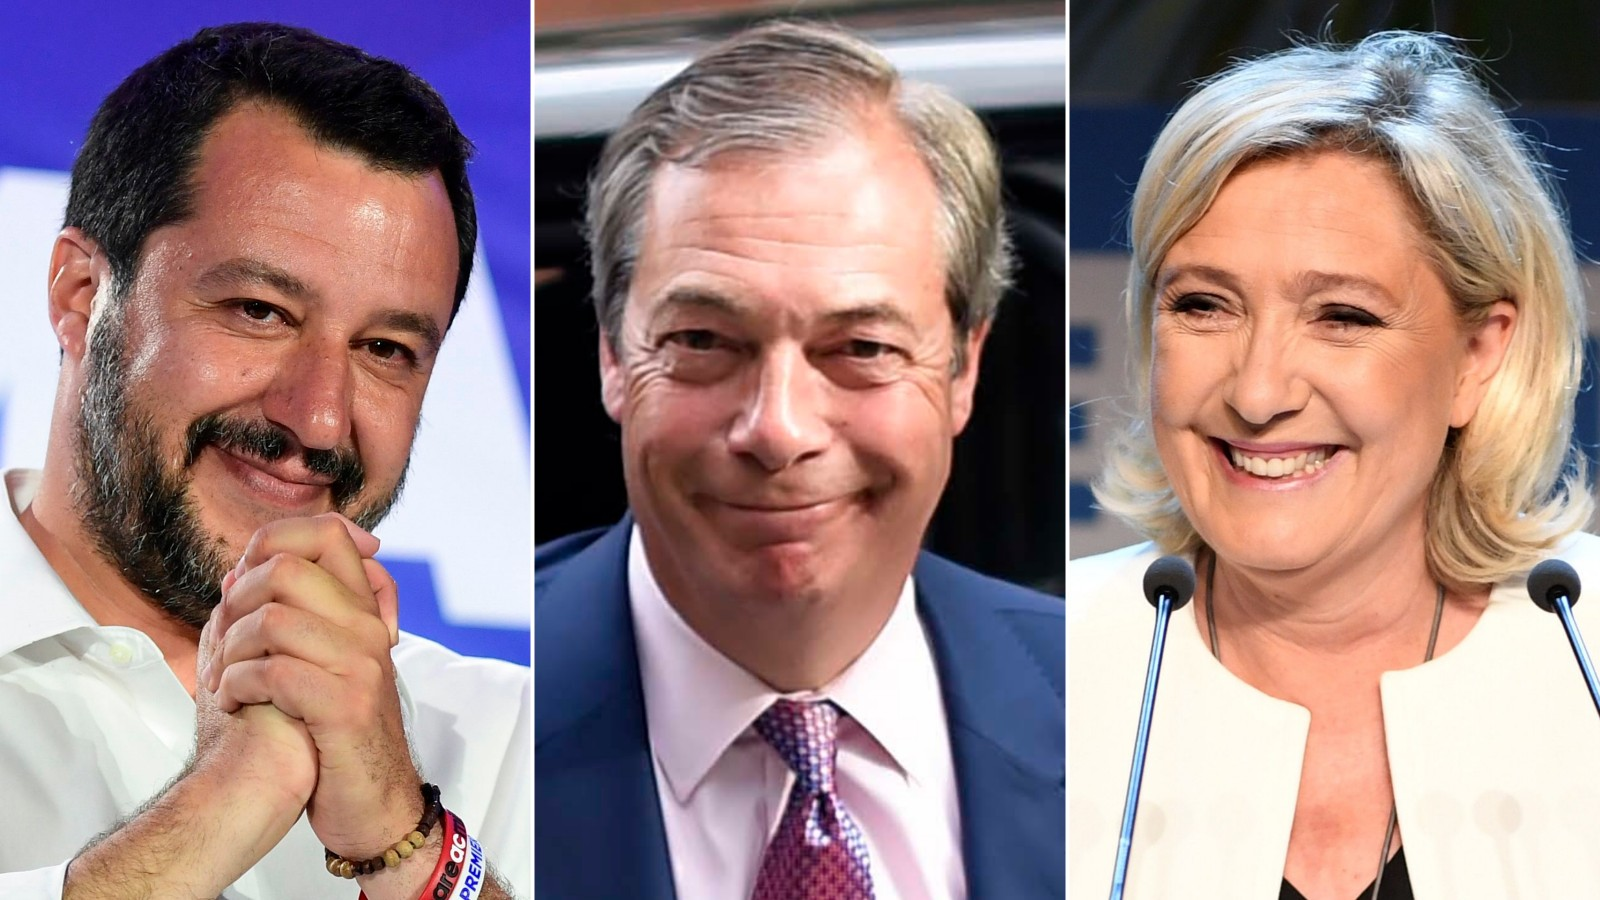 Italian Deputy Prime Minister Matteo Salvini, Brexit Party leader Nigel Farage and President of the National Rally, Marine Le Pen.